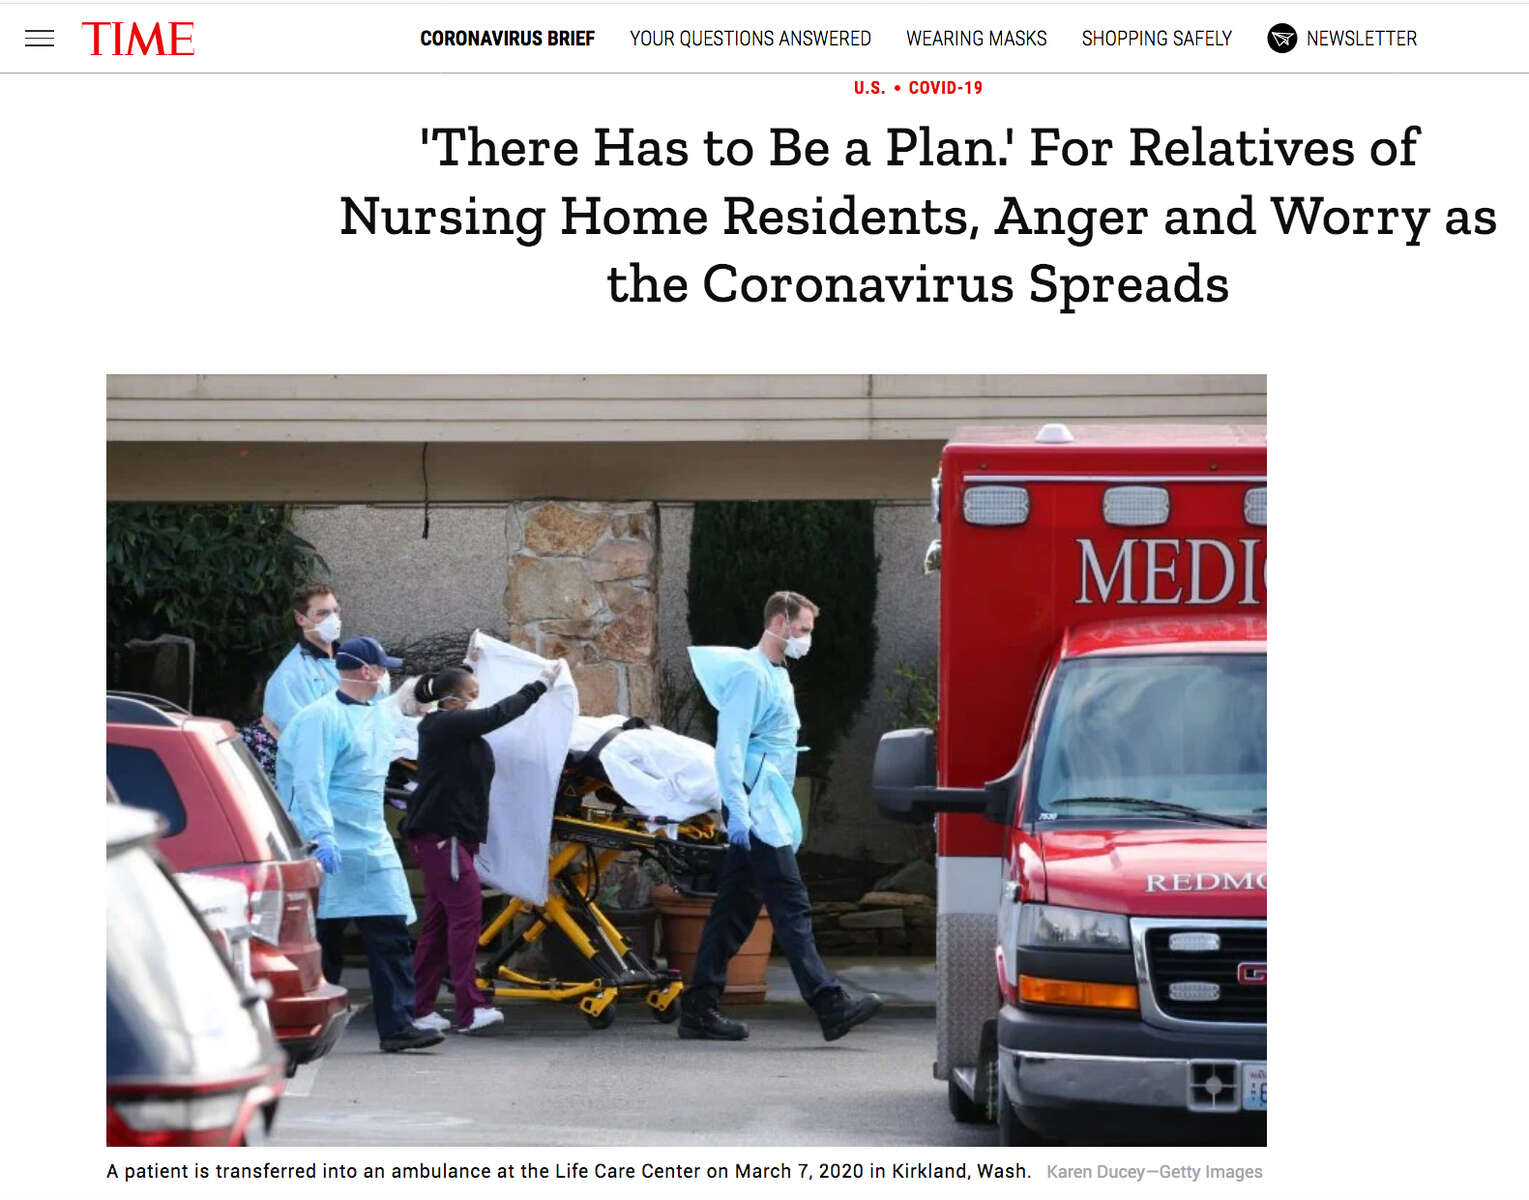 {quote}'There Has to Be a Plan.' For Relatives of Nursing Home Residents, Anger and Worry as the Coronavirus Spreads{quote} photo for Getty Images published in TIME magazine on march 8, 2020.